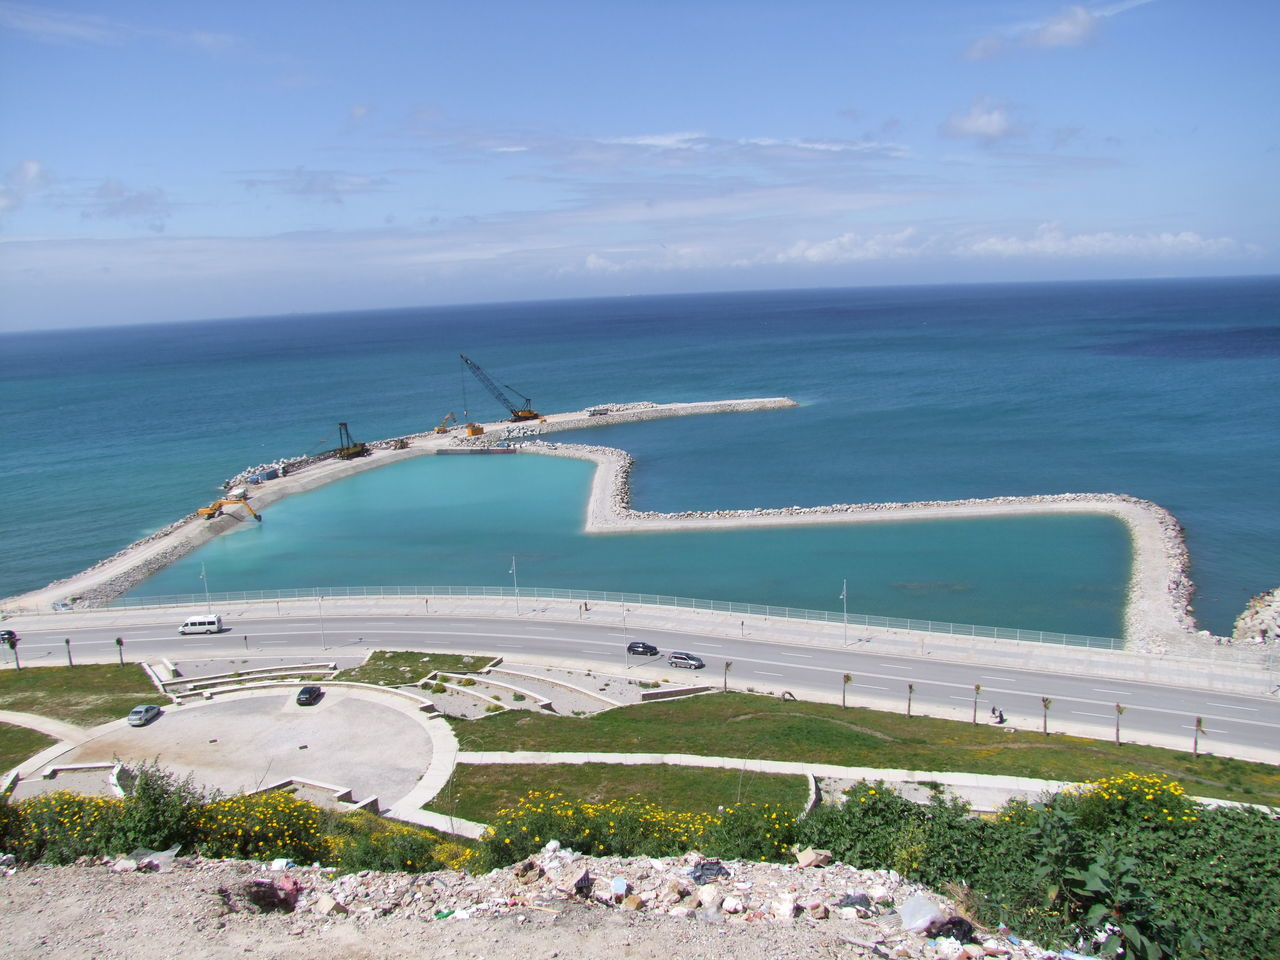 New Dock being built, viewed from the Kasbah Blue Sea Blue Sky White Clouds Coastline Composition Construction Construction Site Construction Work Cranes Dock Grass Horizon Over Water Morocco No People Outdoor Photography Ripples In The Water Road Sand Sea Sunlight Tangier Water